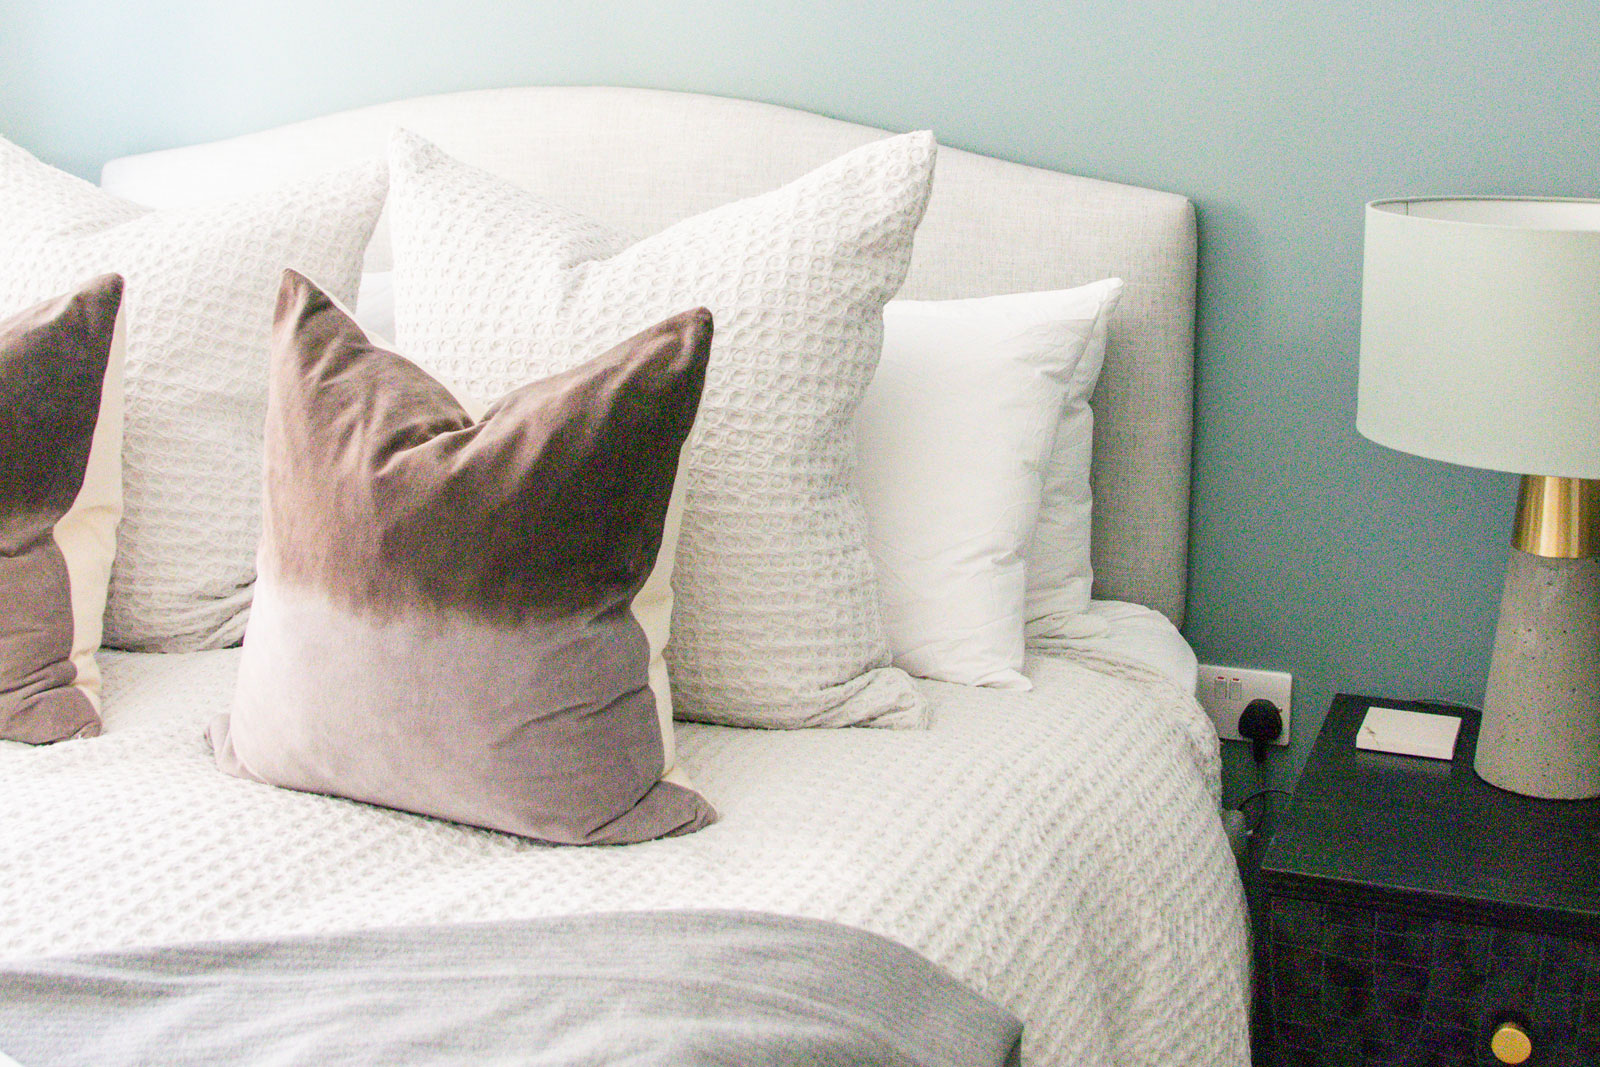 cushions, cushion, bed cushions, bed styling, sofa styling, cushion style, cushion obsessed